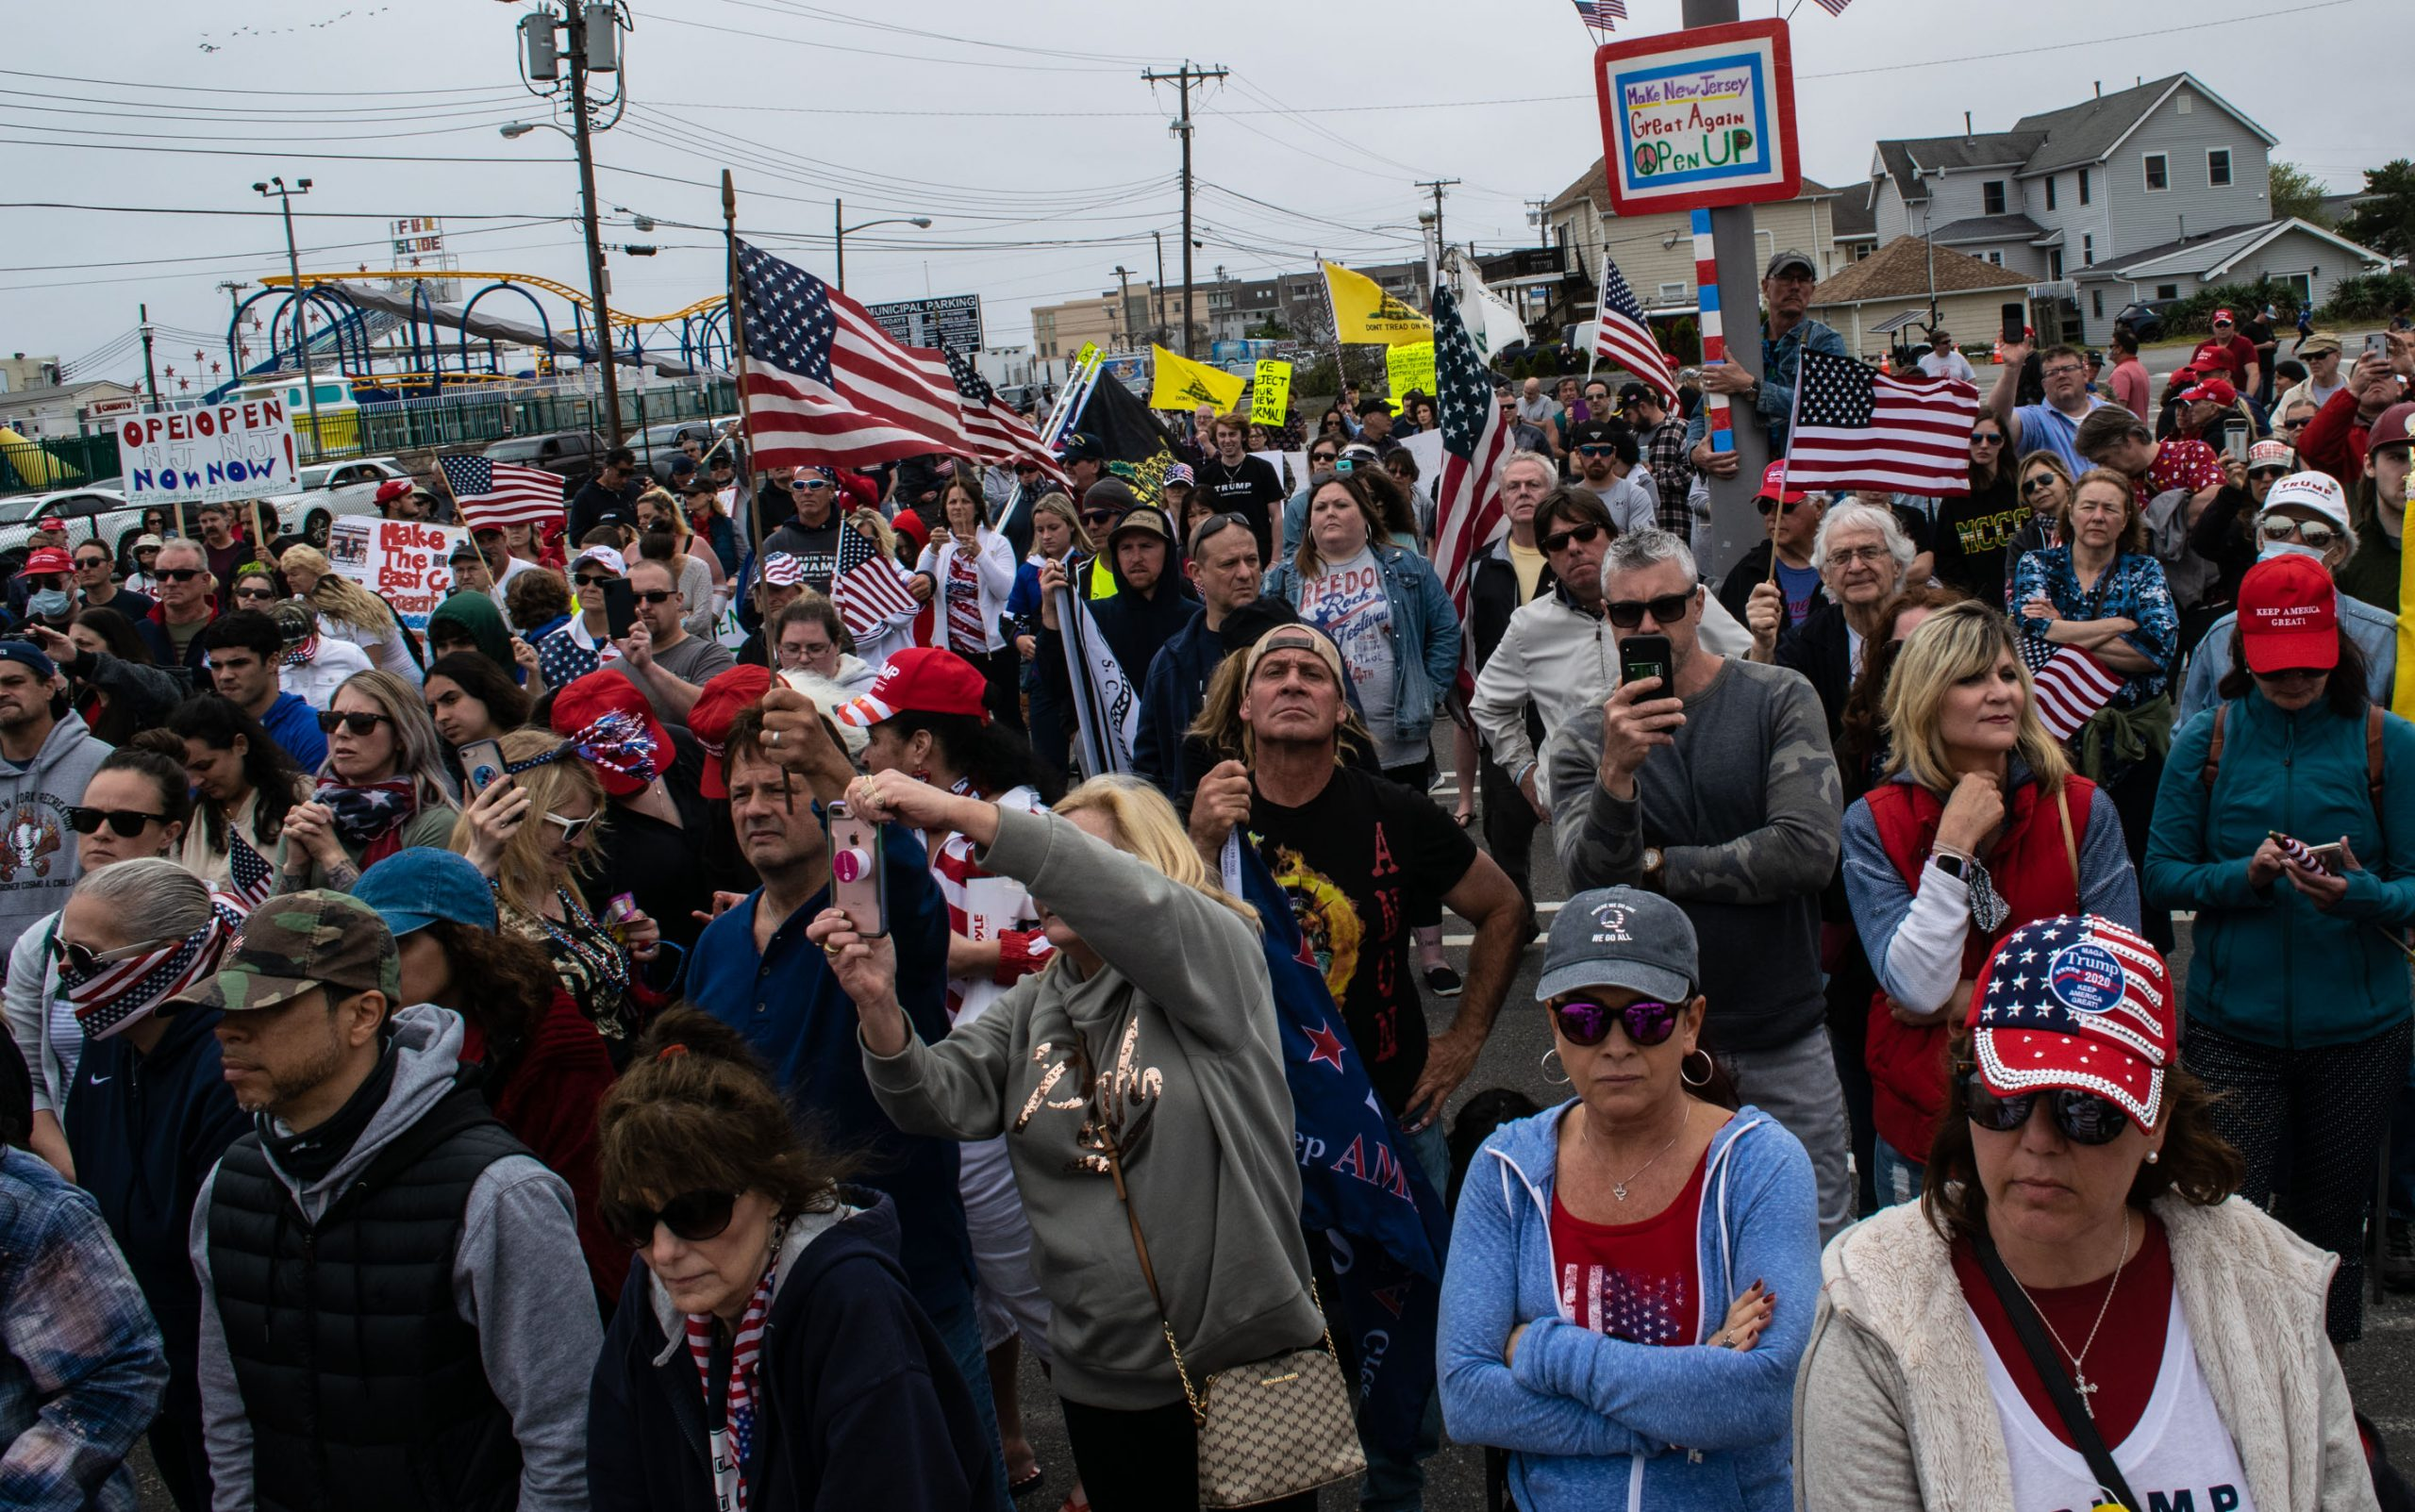 A 'Reopen NJ' rally is held in Point Pleasant Beach, May 25, 2020. (Photo: Daniel Nee)